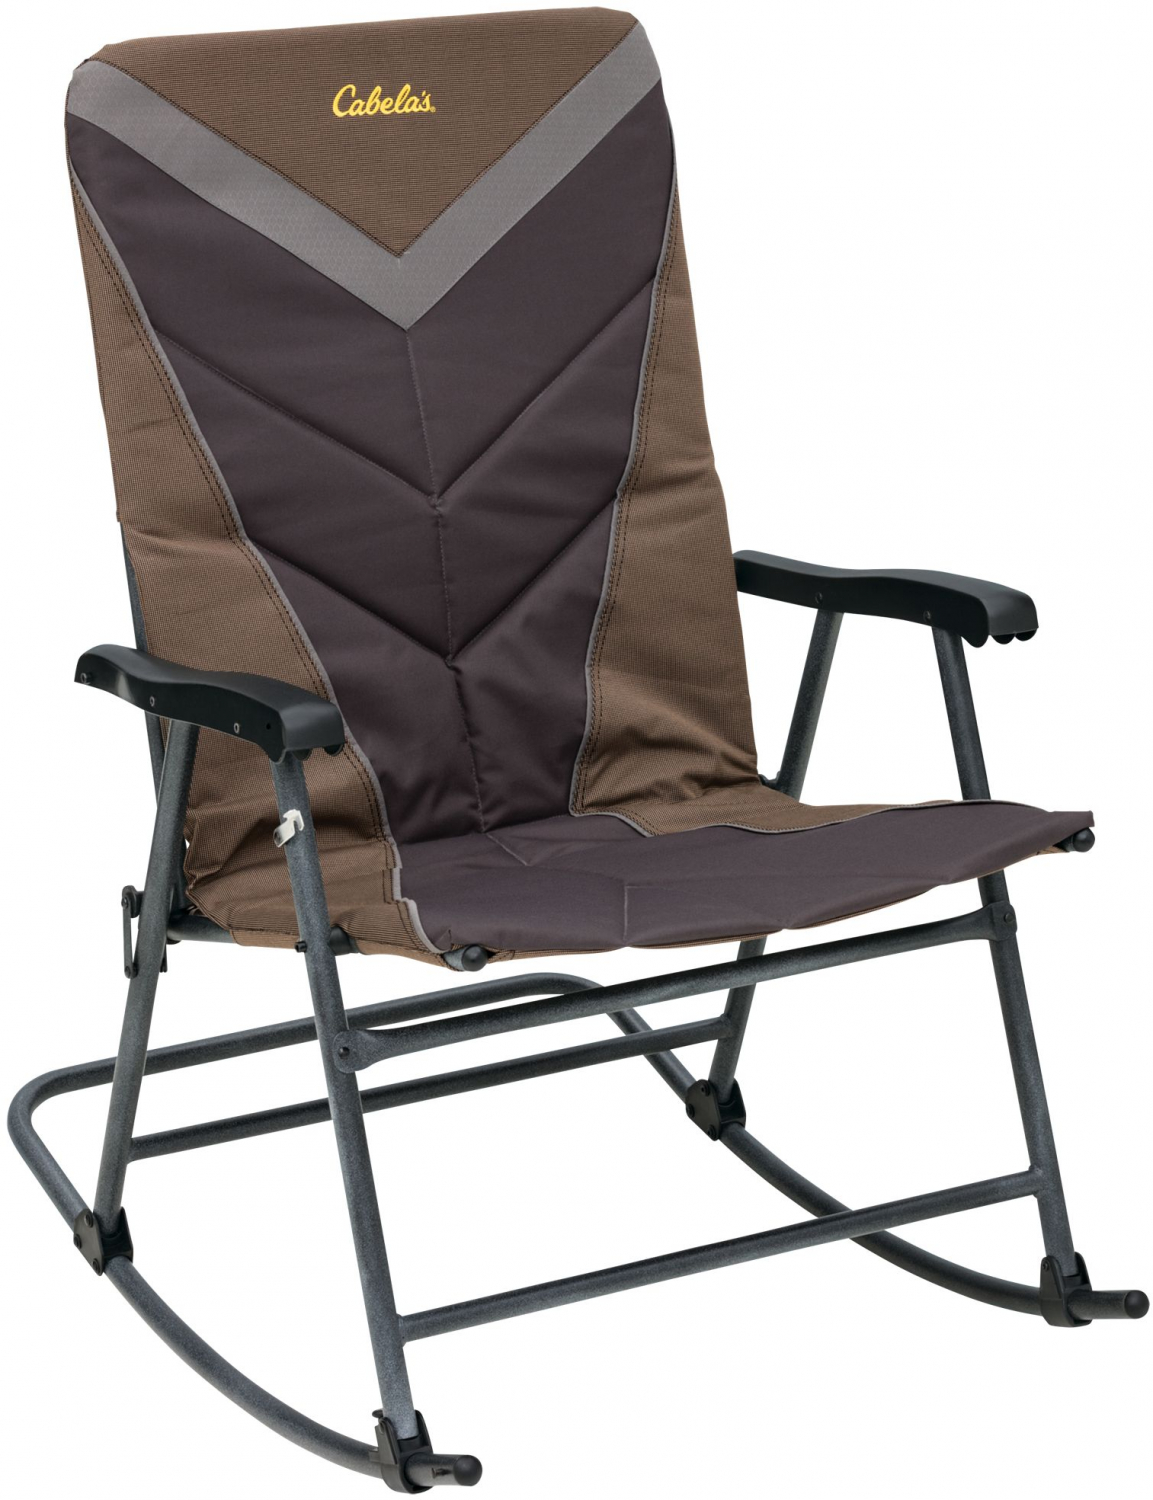 Cool Details About Cabelas Big Outdoorsman Rocker Fold Up Chair Gmtry Best Dining Table And Chair Ideas Images Gmtryco